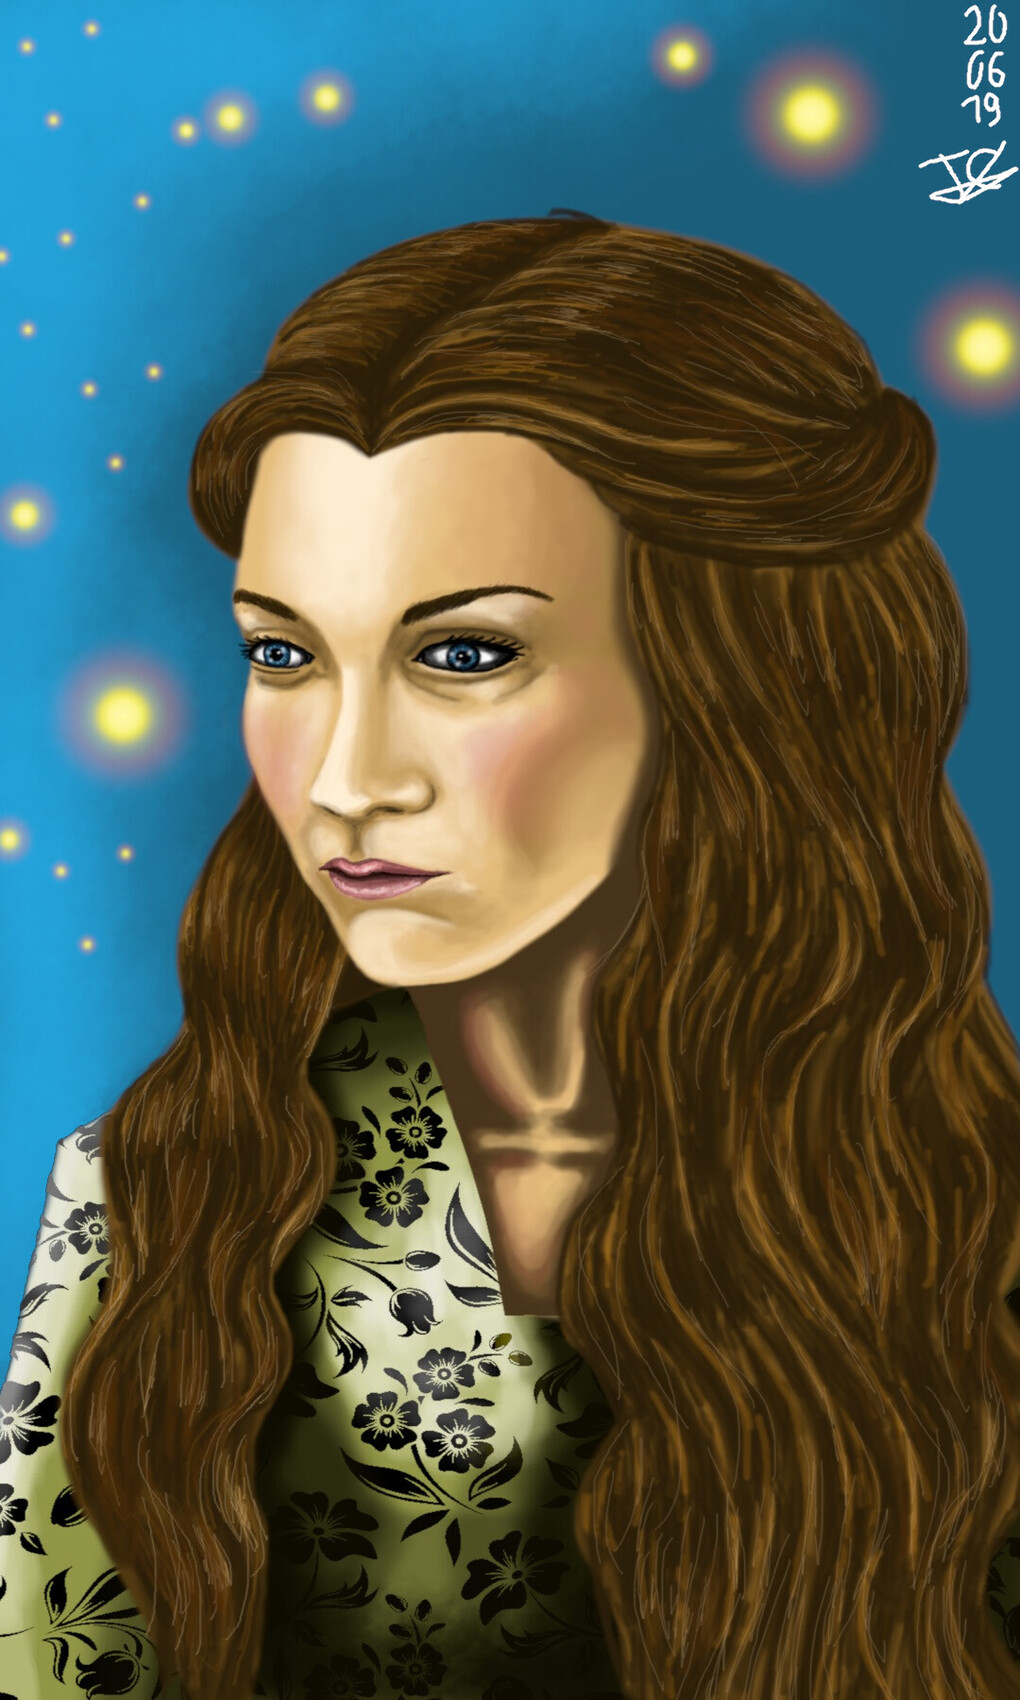 Margaery Tyrell (Game of Thrones)